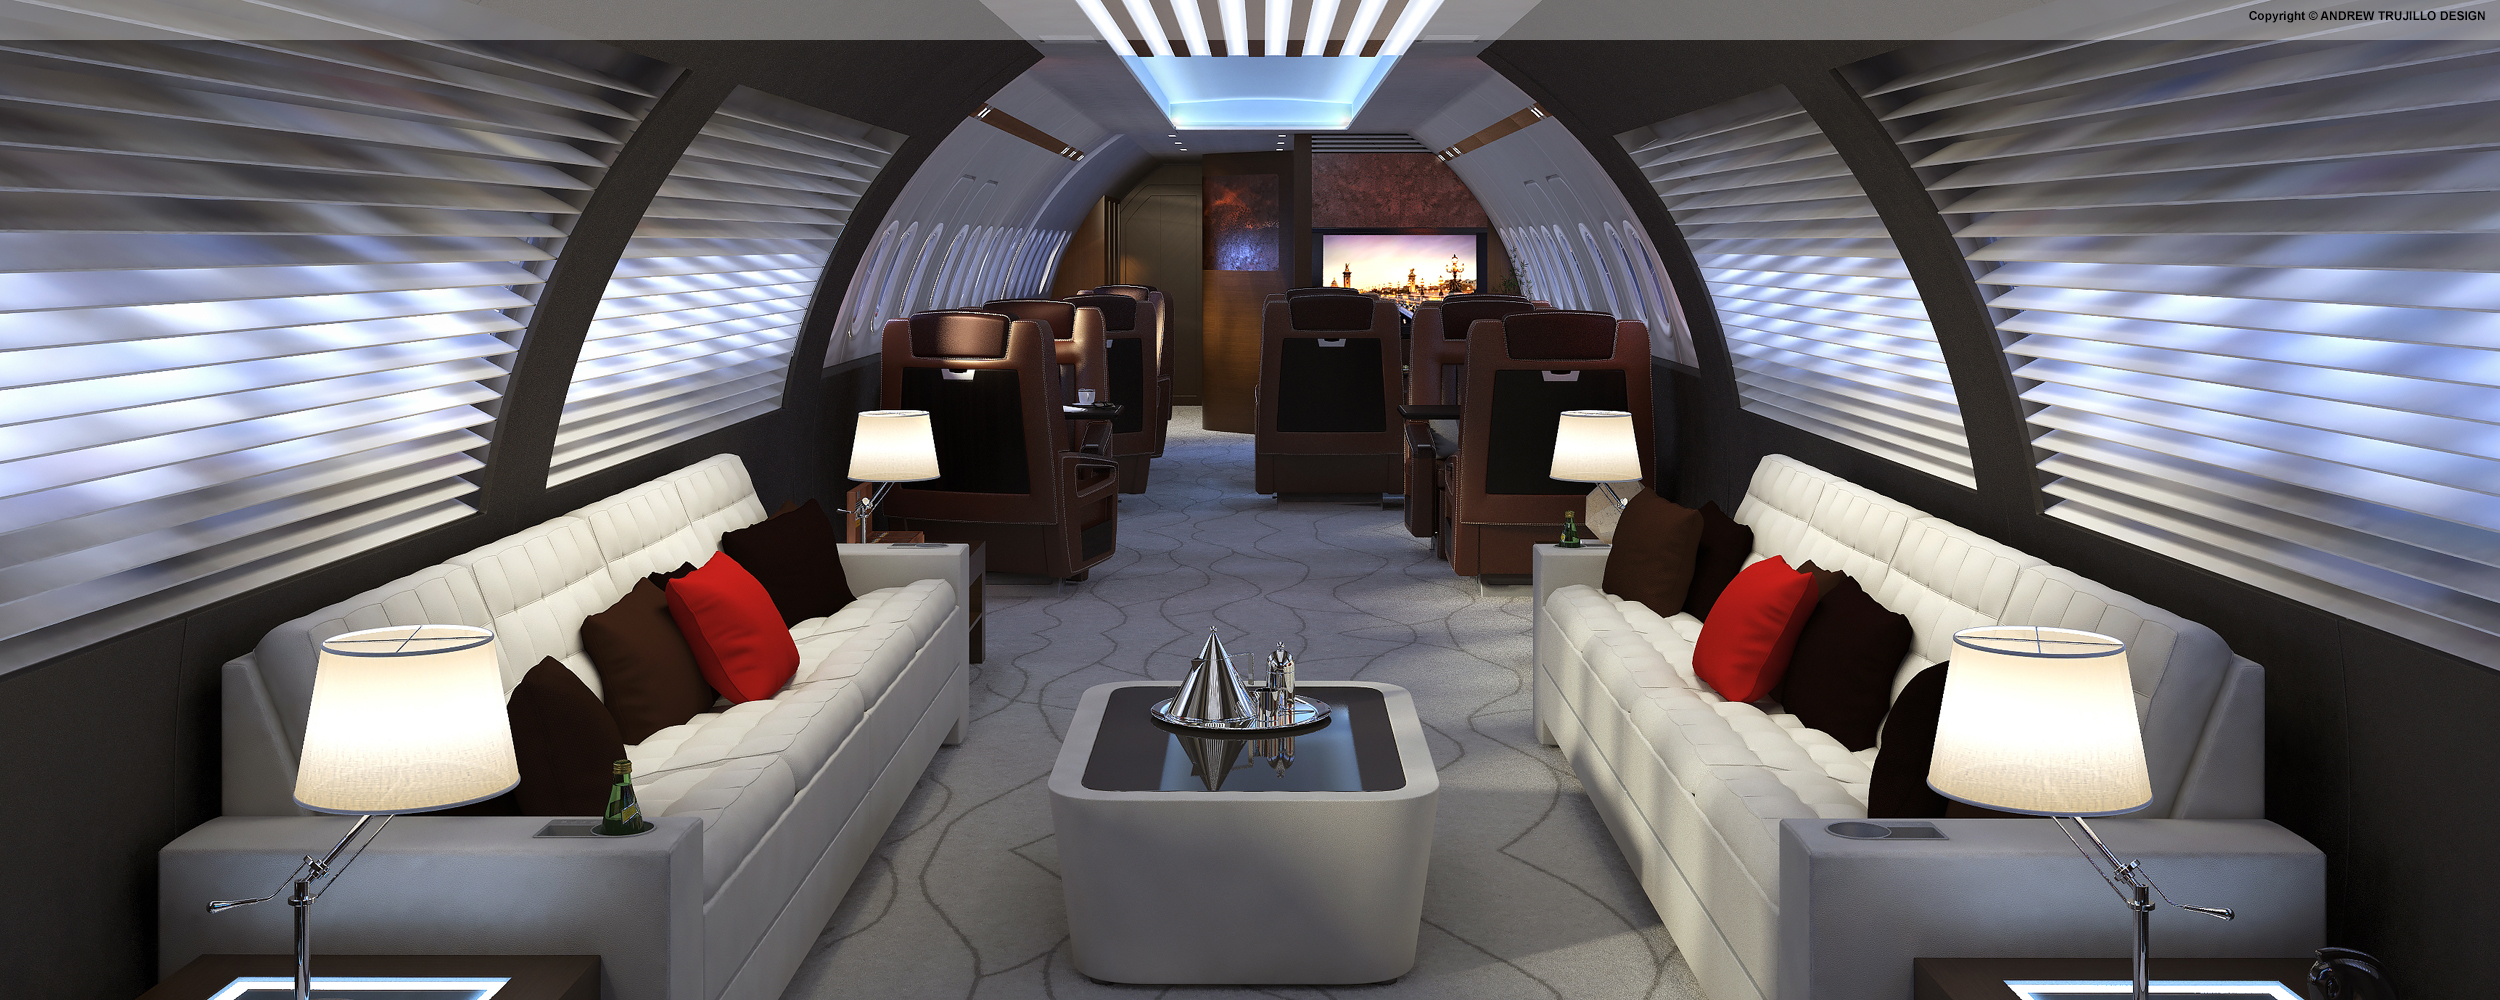 Concept Interior Business Jet